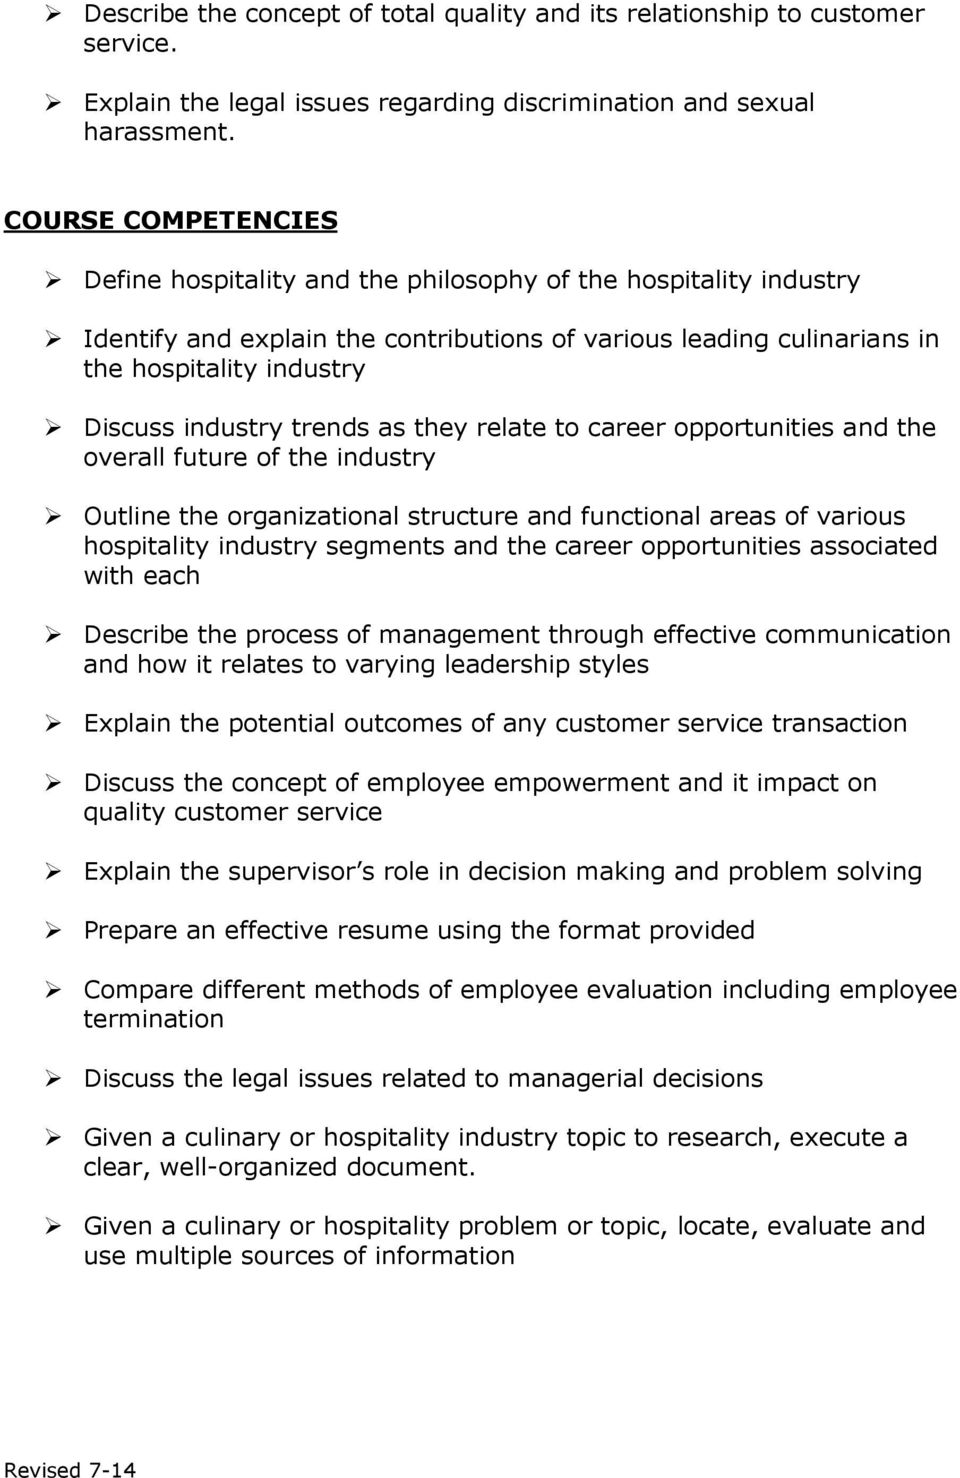 industry trends as they relate to career opportunities and the overall future of the industry Outline the organizational structure and functional areas of various hospitality industry segments and